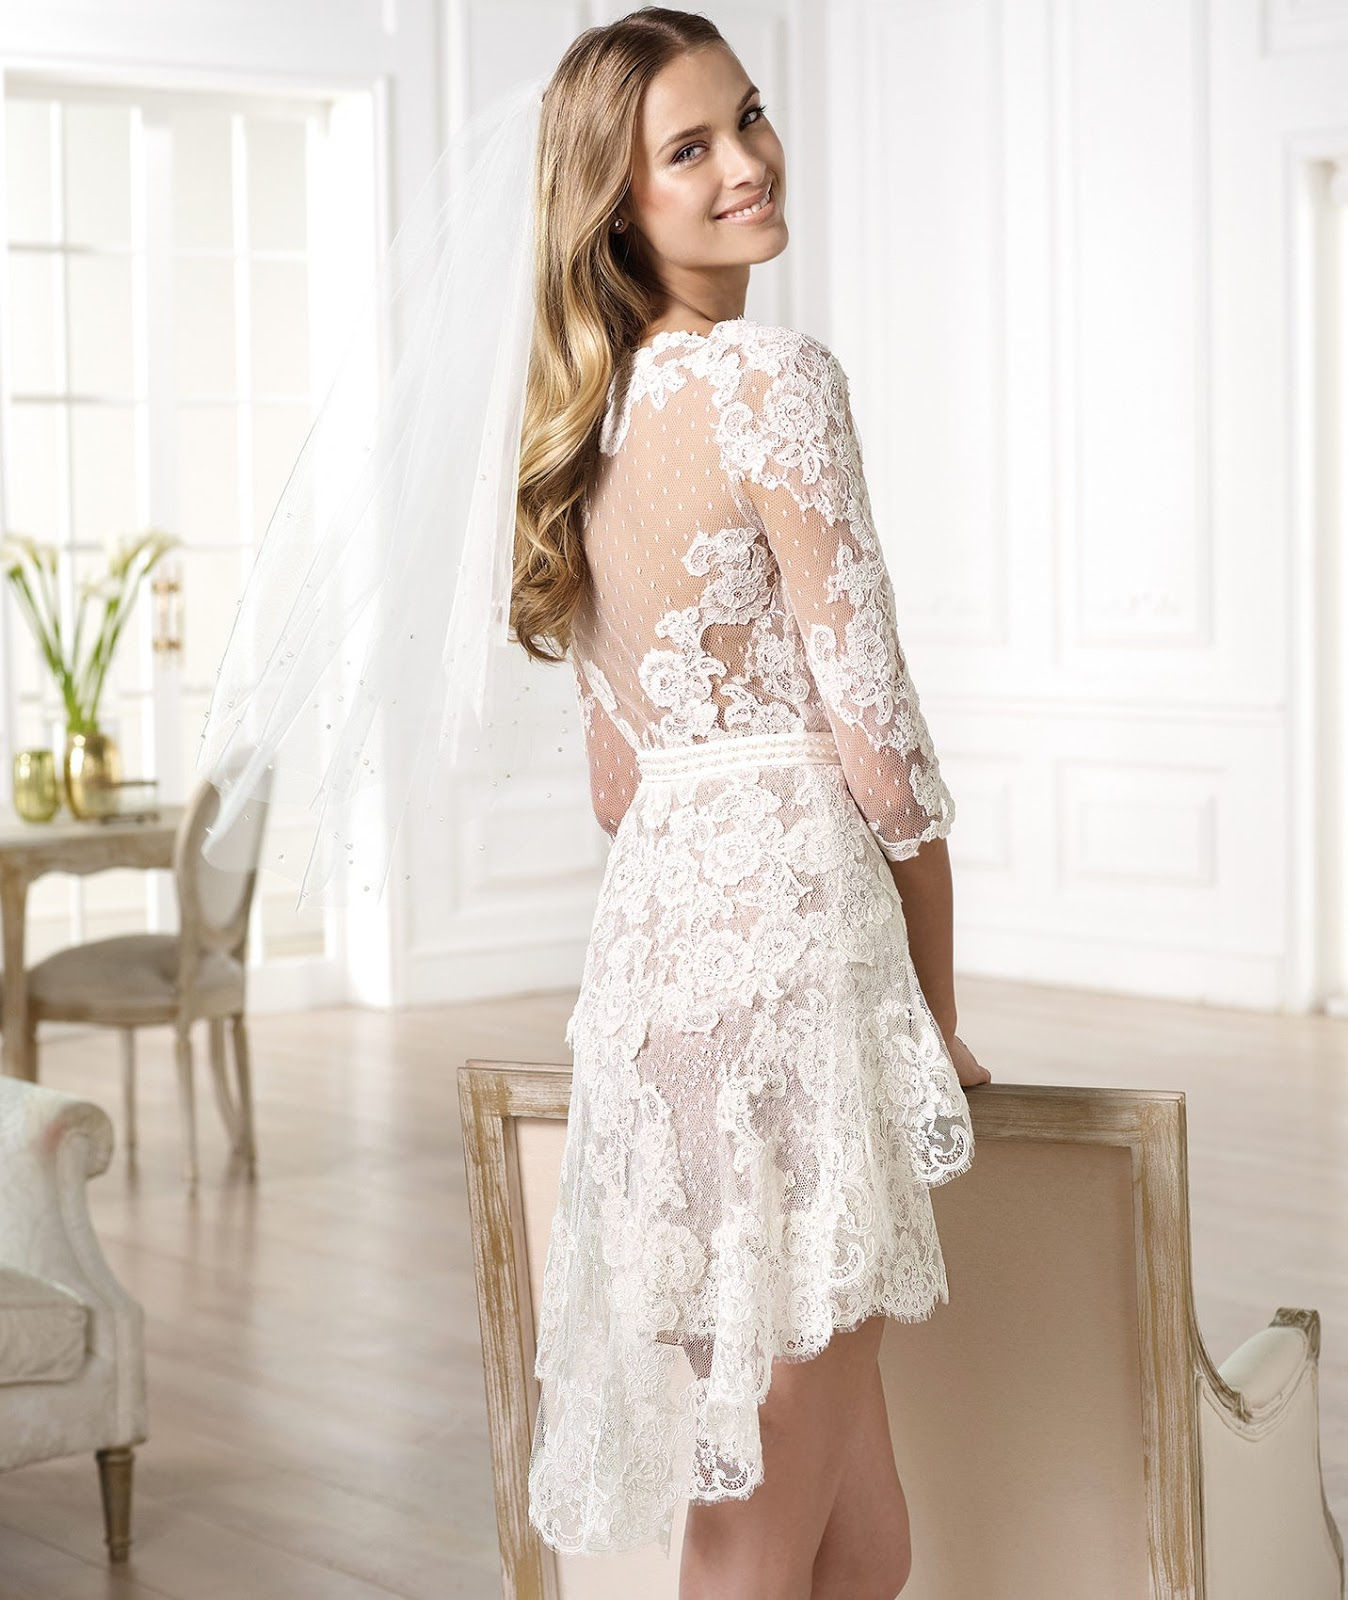 Get feminine look with short lace wedding dresses for Lace dresses for weddings